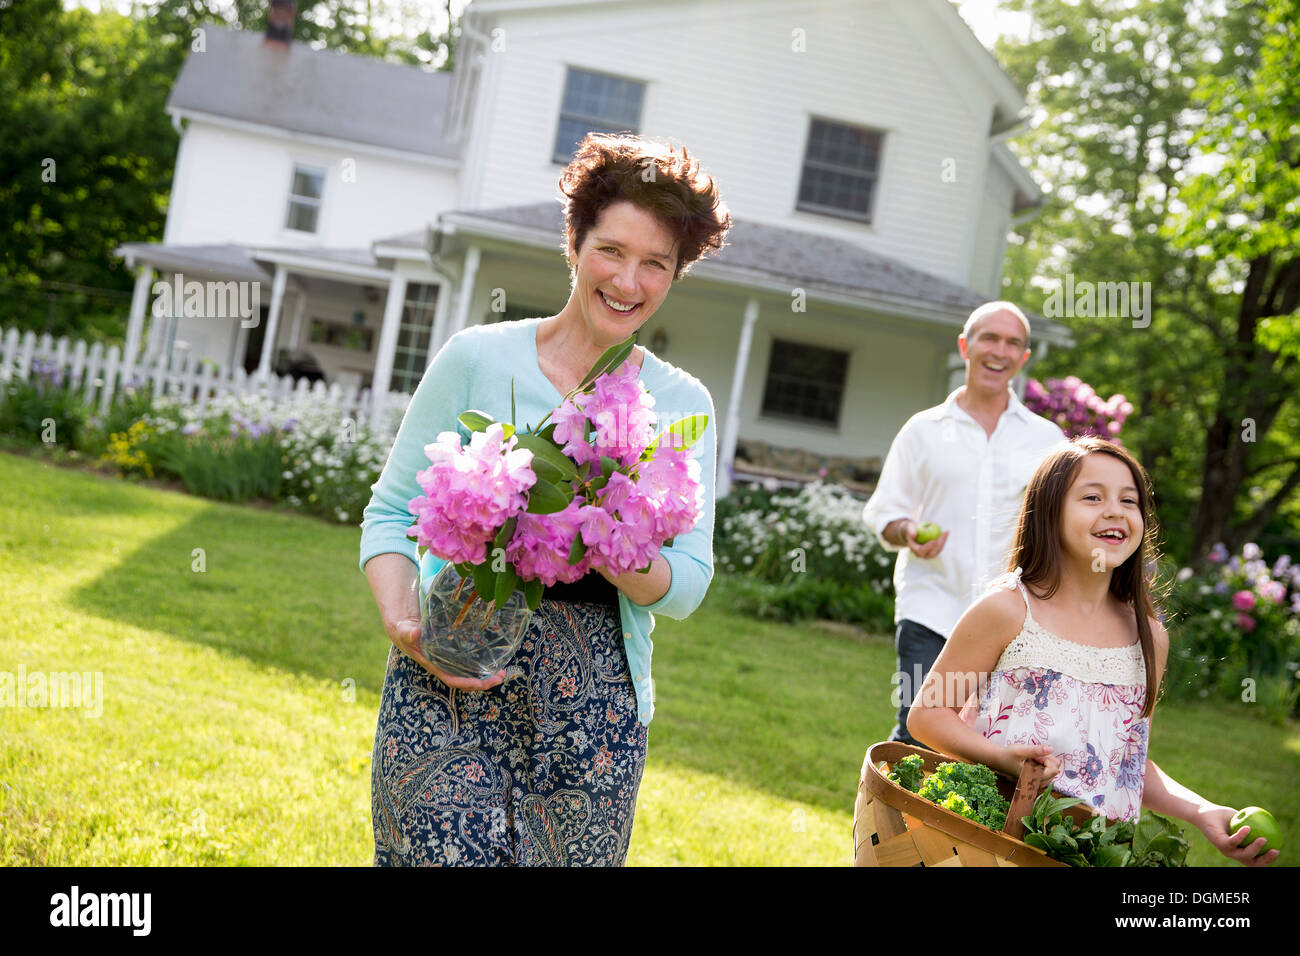 Family party. Parents and children walking carrying flowers, fresh picked vegetables and fruits. Preparing for a party. - Stock Image